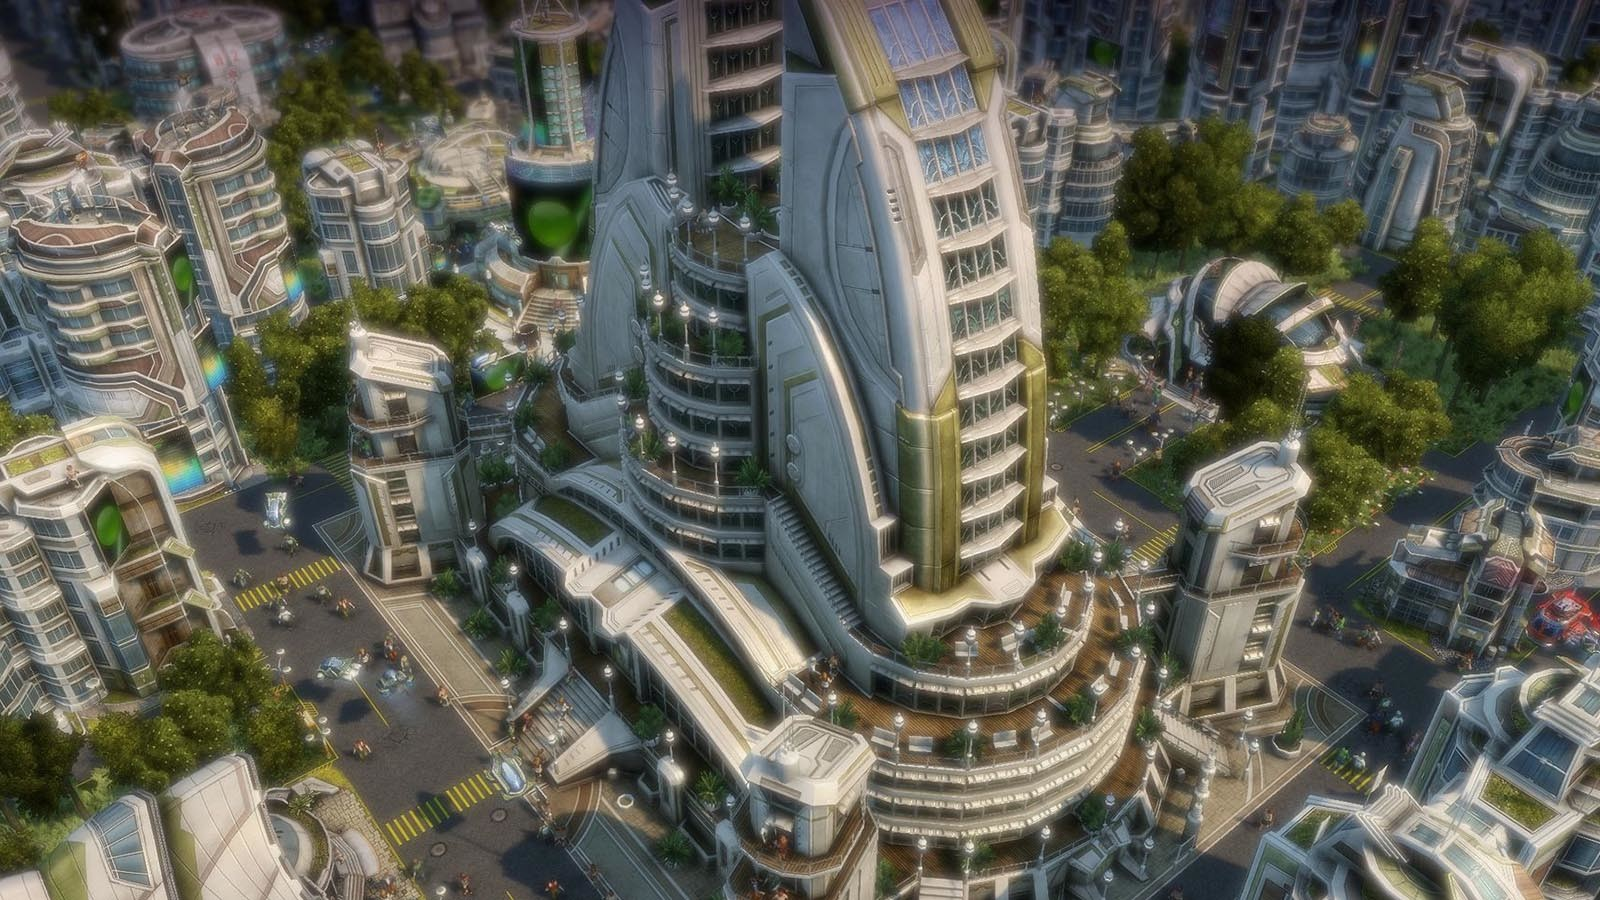 Screenshot1 - Anno 2070 · Screenshot2 - Anno 2070 ...